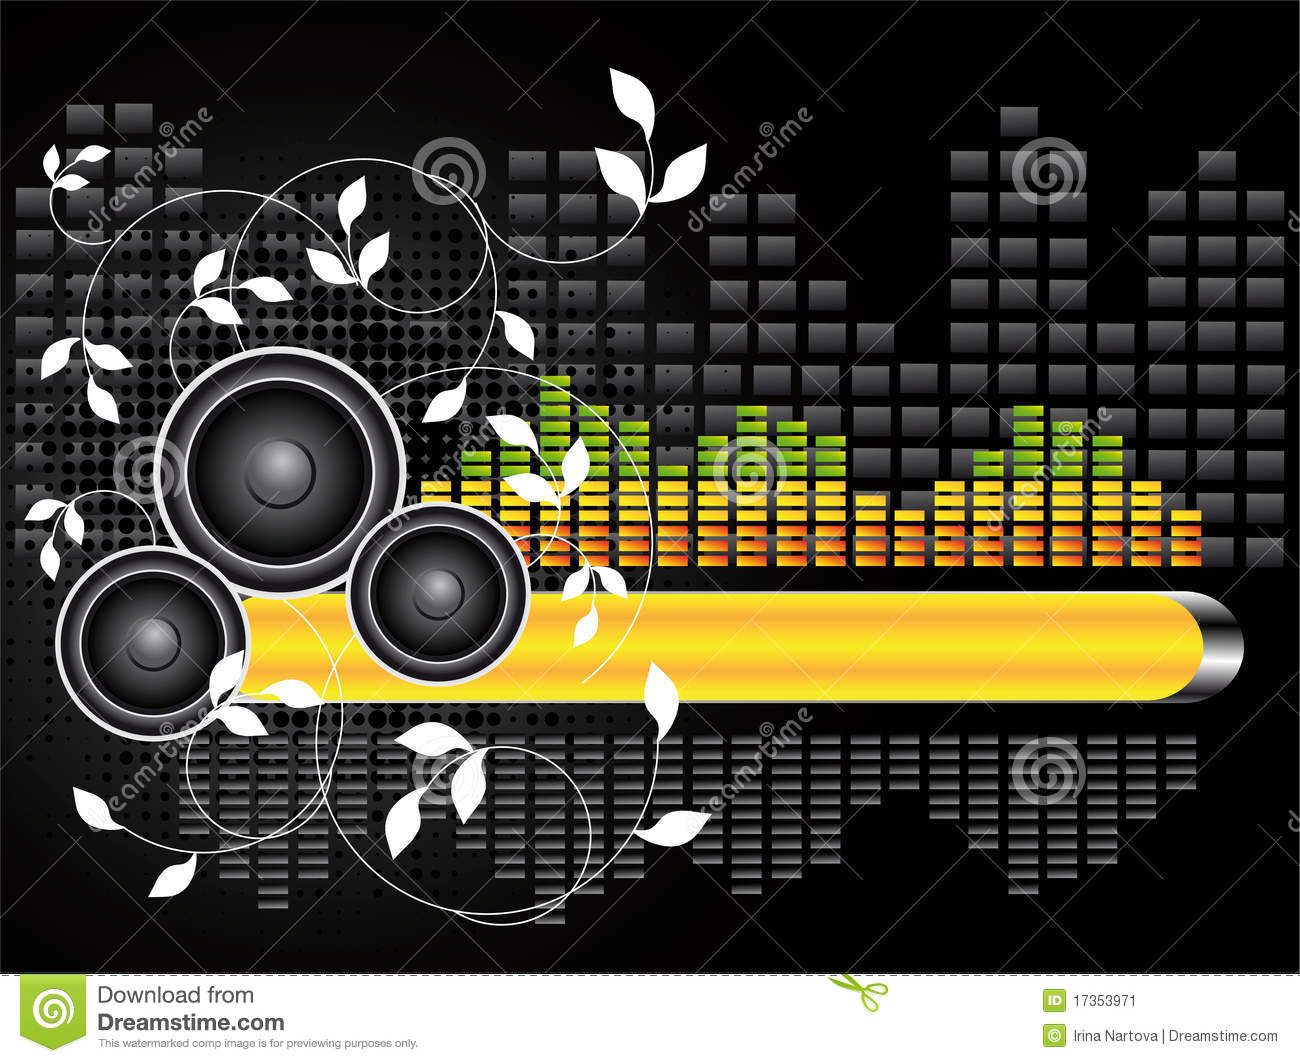 Urban music for android apk download.